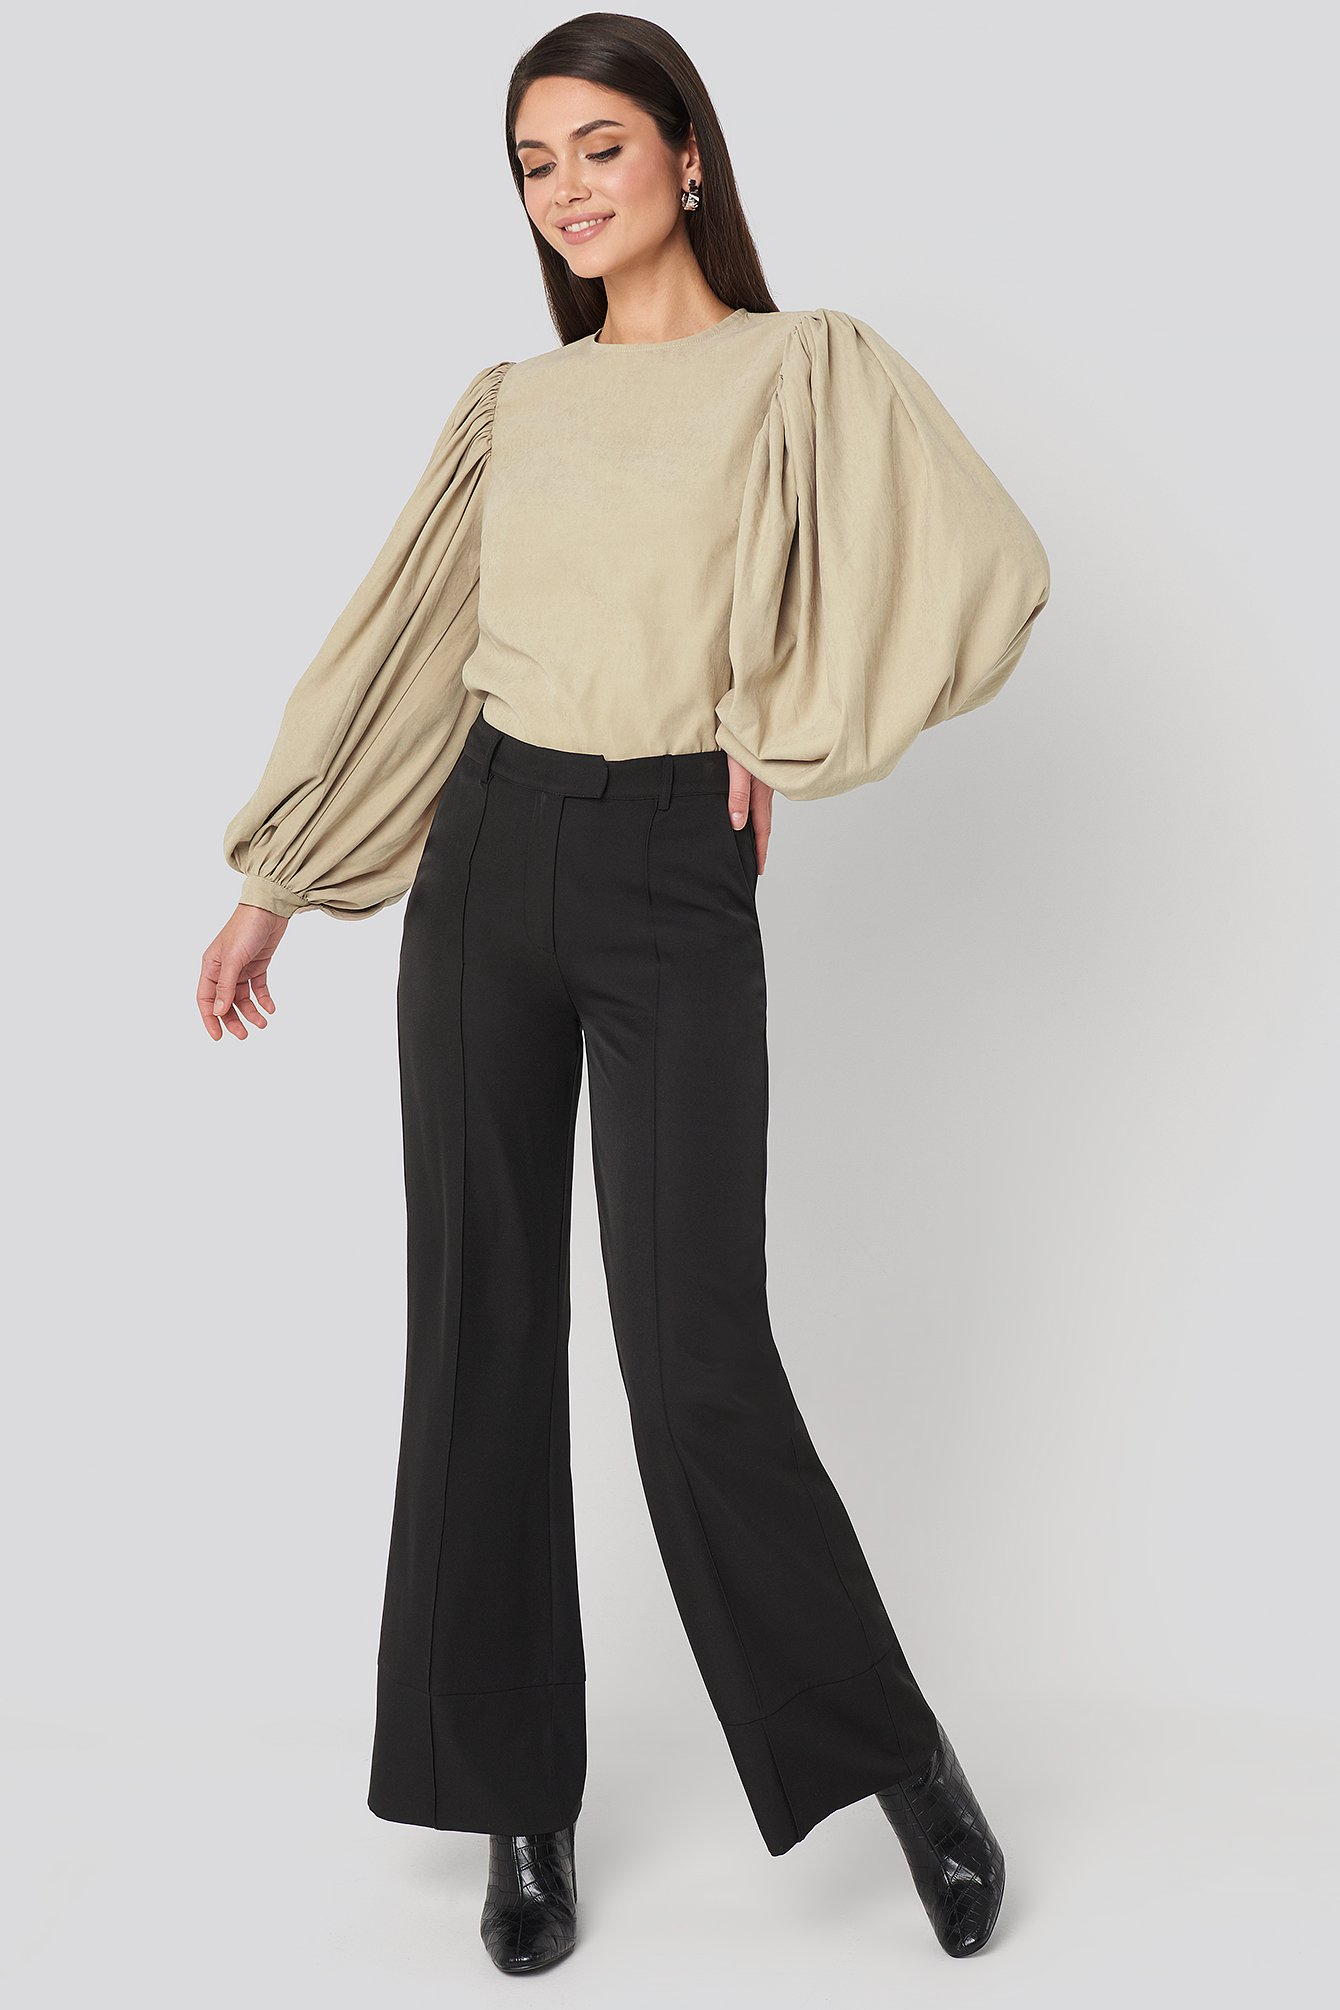 na-kd trend -  Fold Up Flared Pants - Black